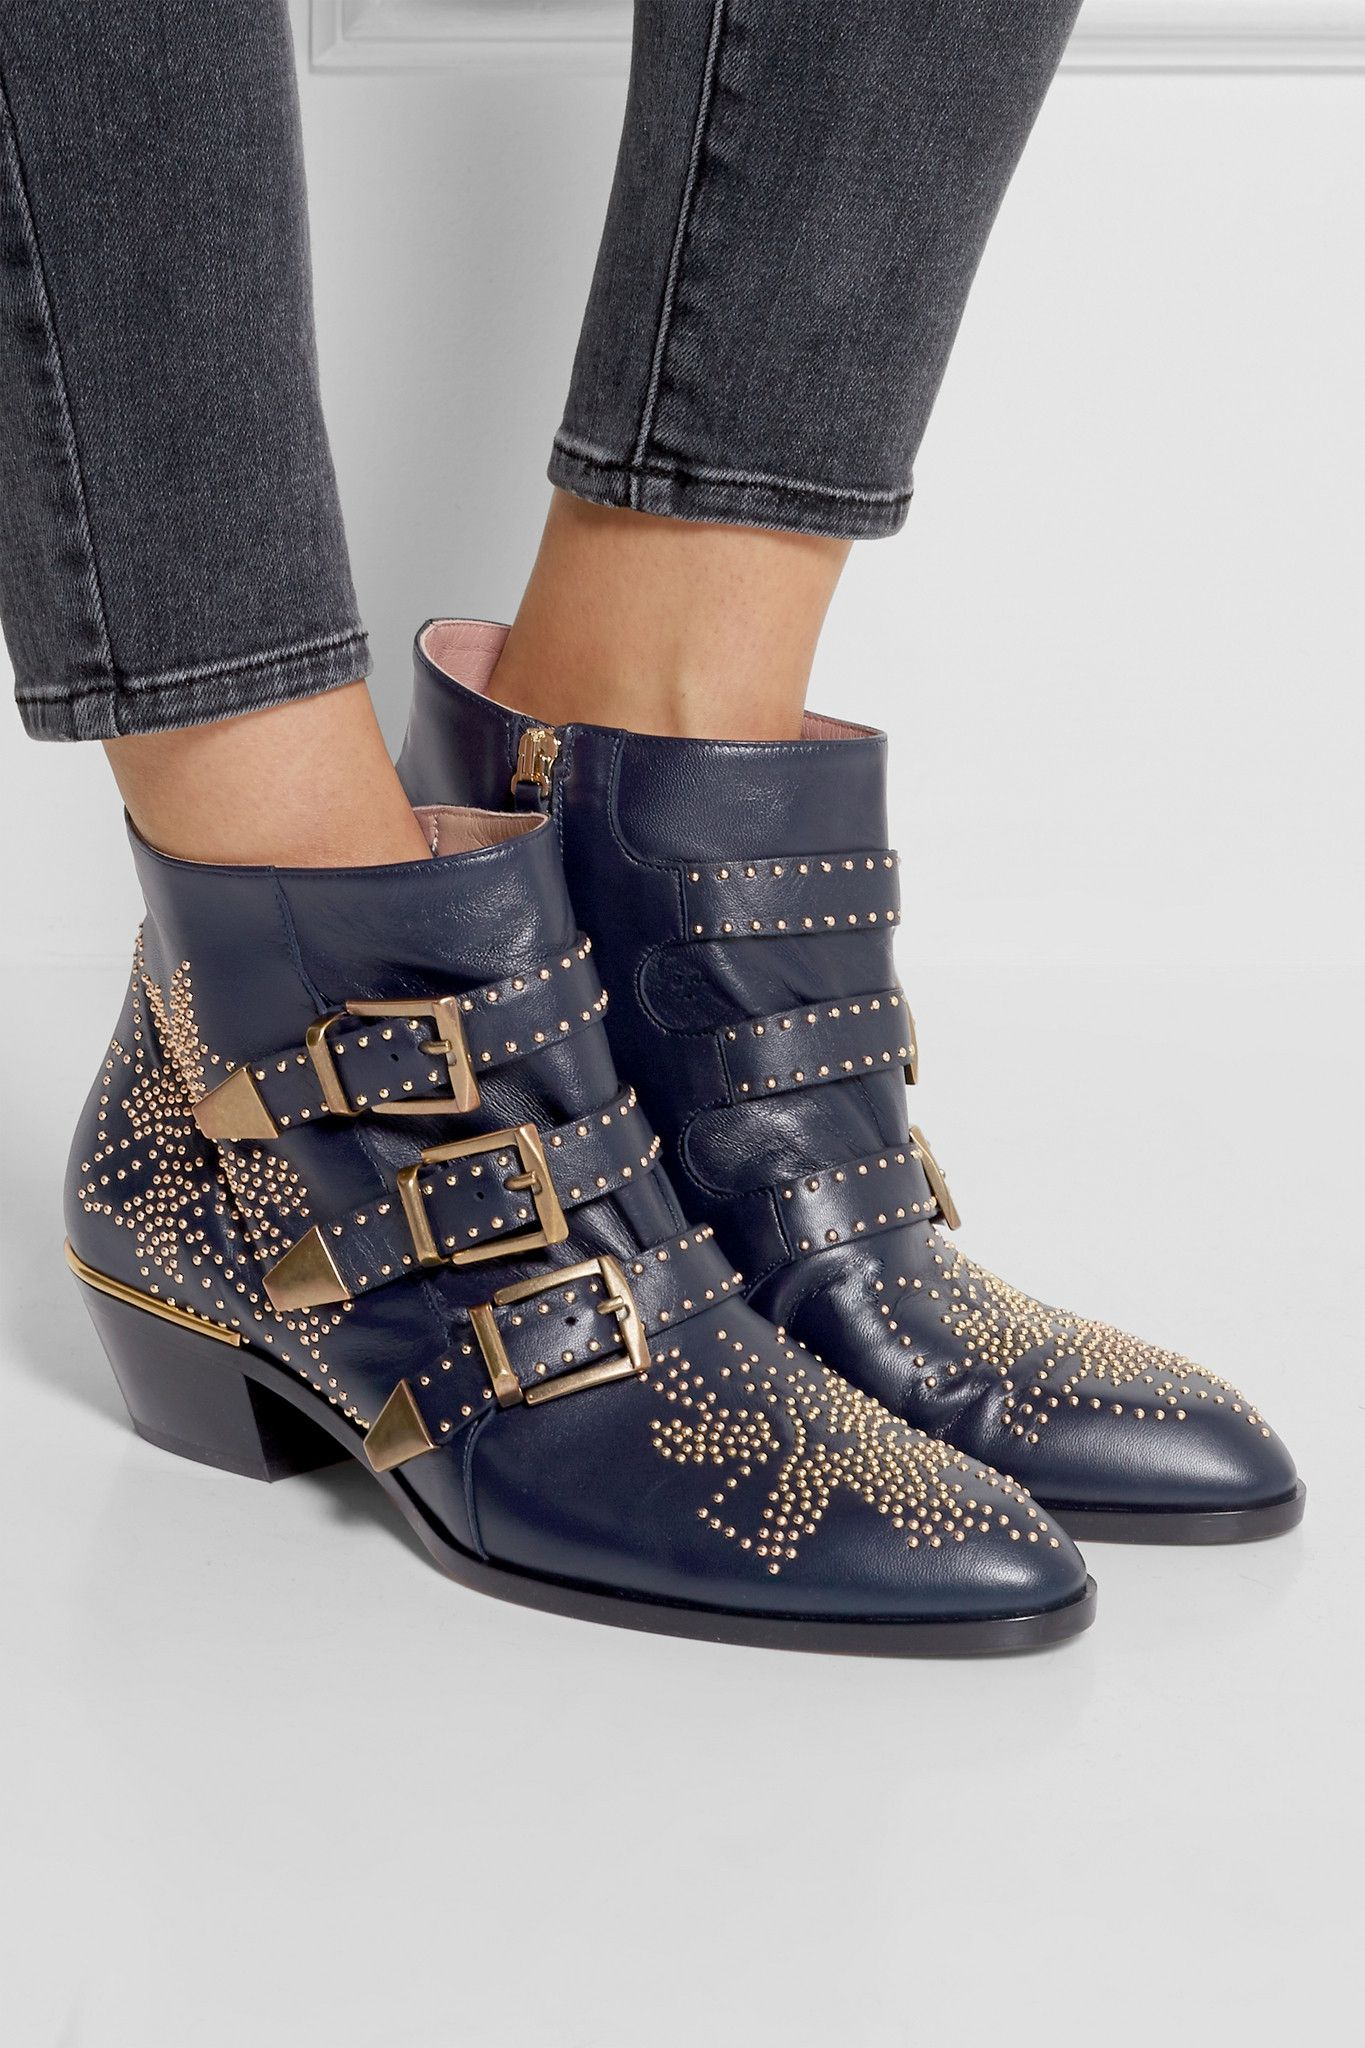 f085594e0e29 CHLOÉ Susanna studded leather ankle boots €950.00 https   www.net-